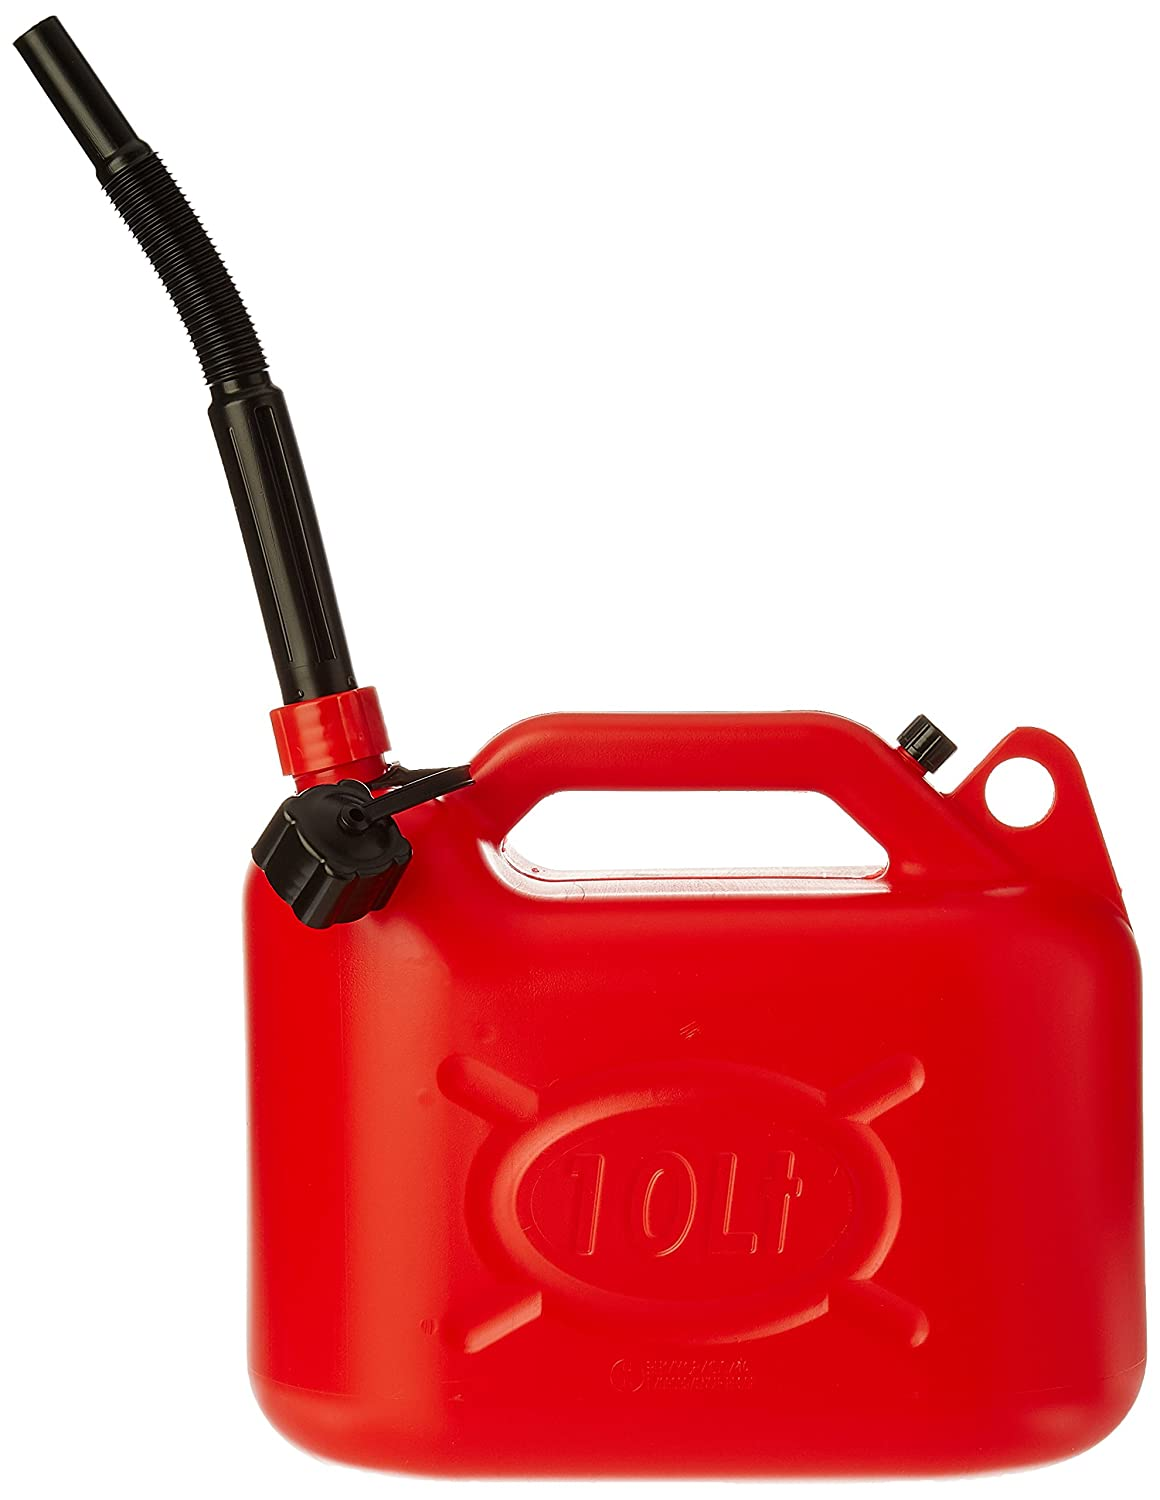 Peraline 361 Petrol Jerry Can 10 Litre Peraline SAS